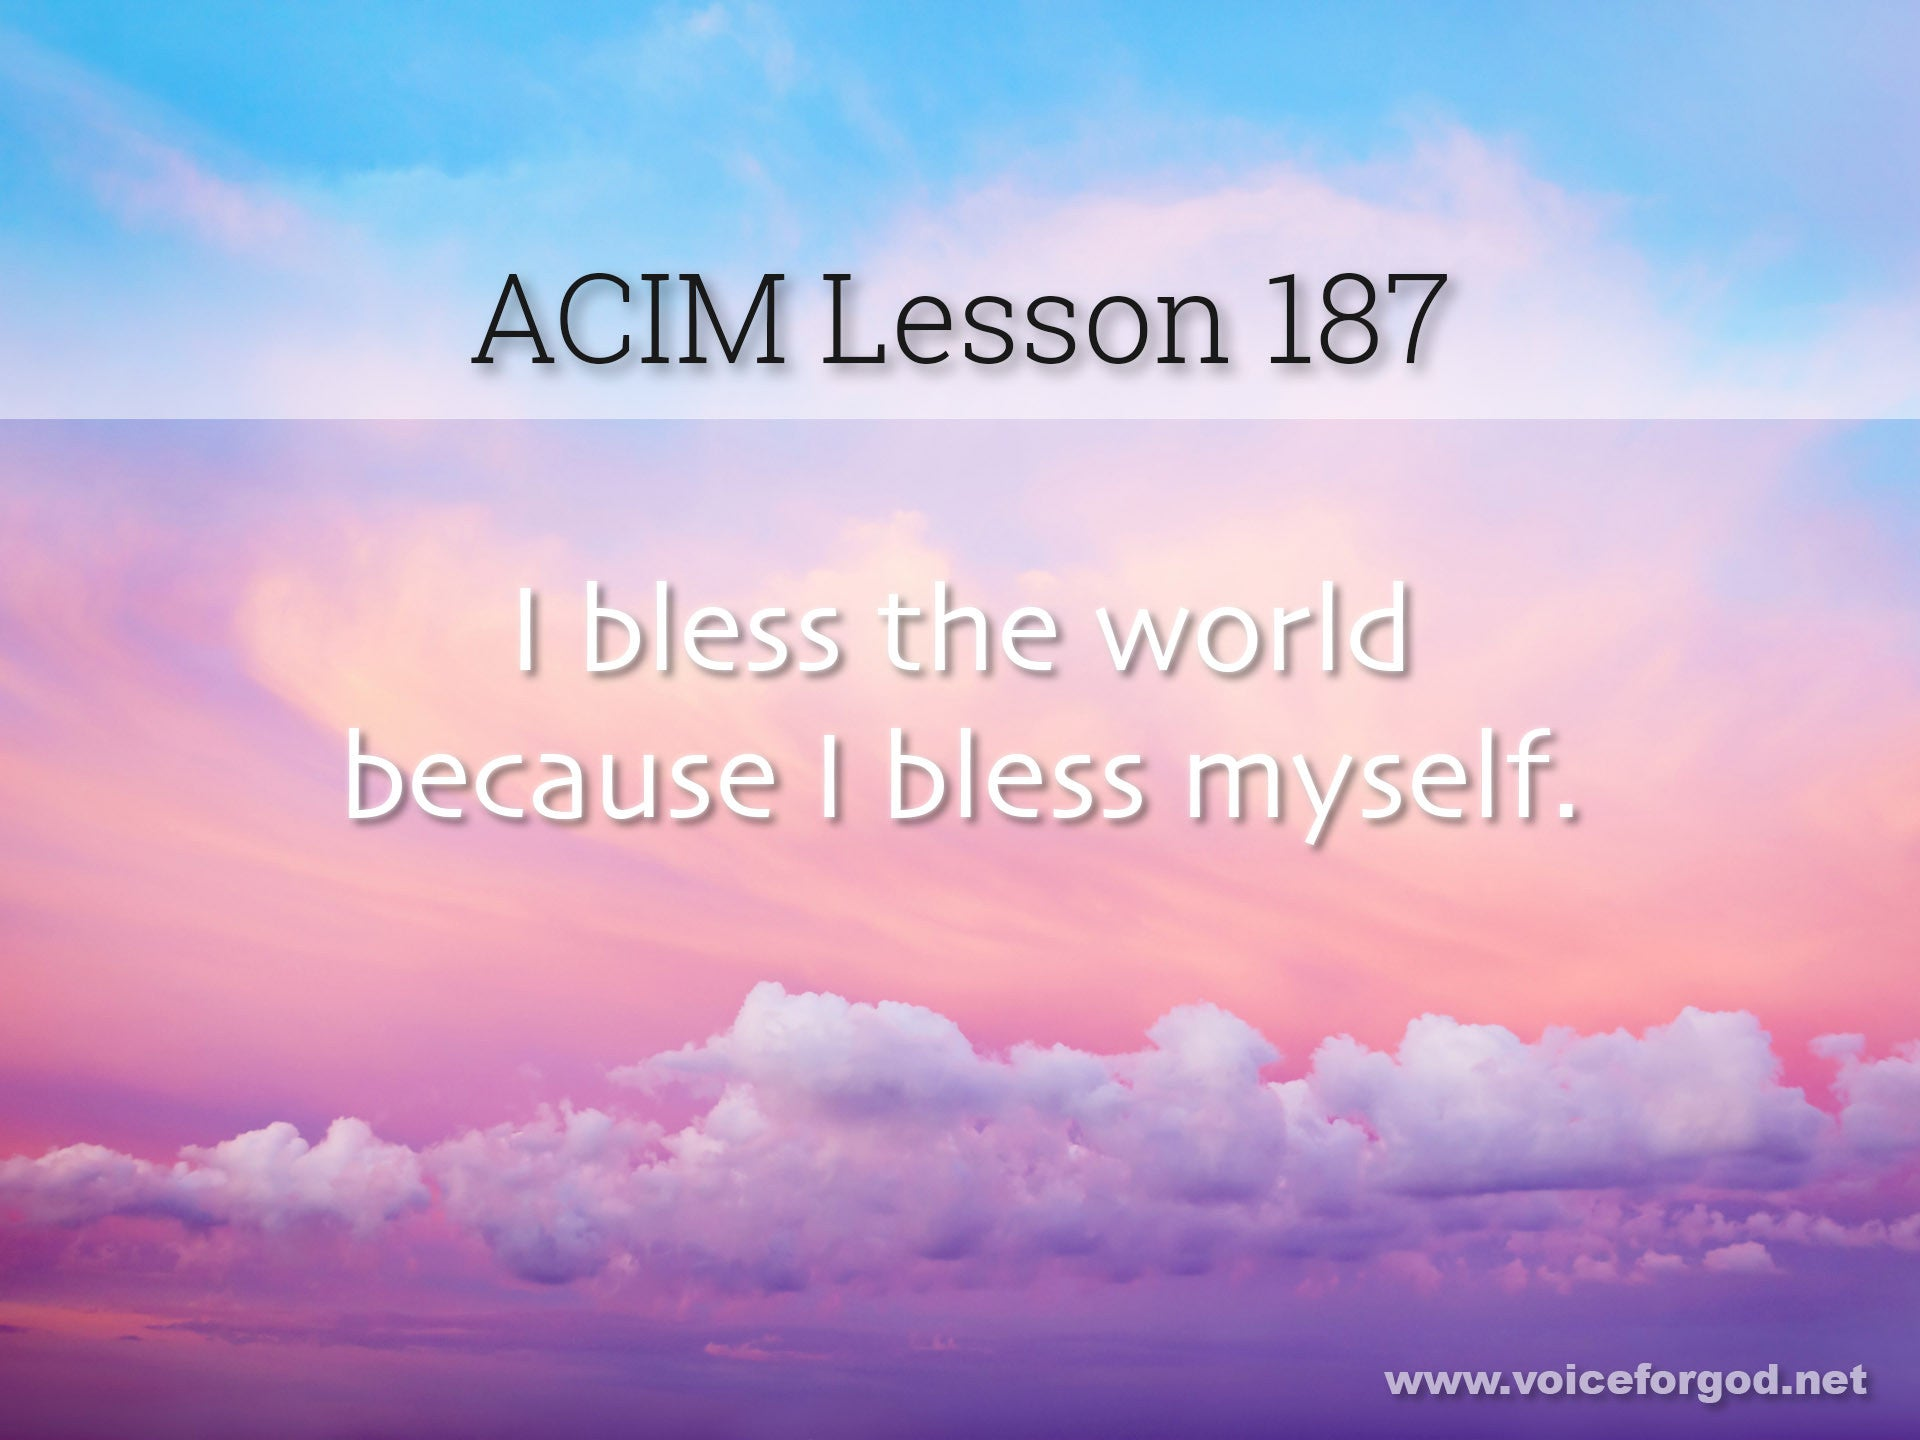 ACIM Lesson 187 - A Course in Miracles Workbook Lesson 187